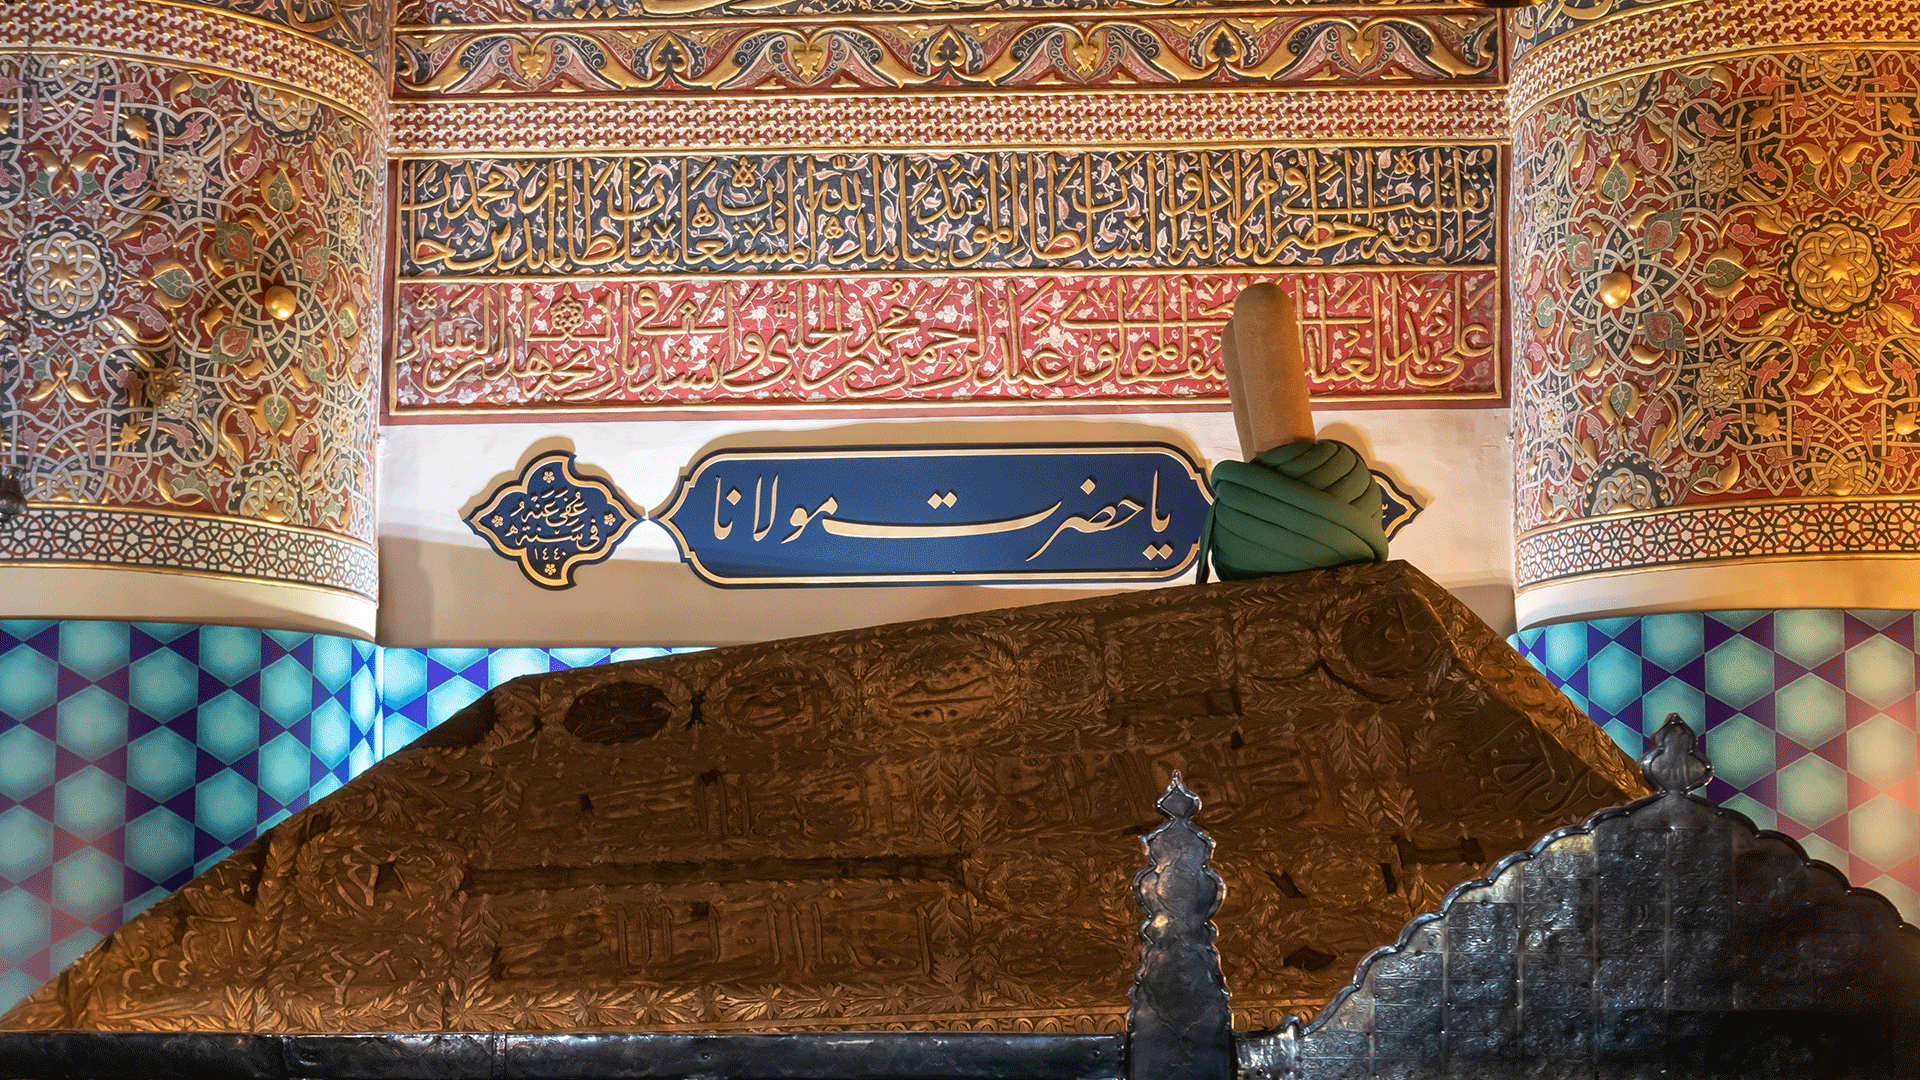 Tomb: The tomb of Sufi poet and teacher Jalaluddin Rumi, Konya, Turkey.  Rumi arrived in what is now modern-day Turkey in 1228 — a refugee from the mongol onslaught.